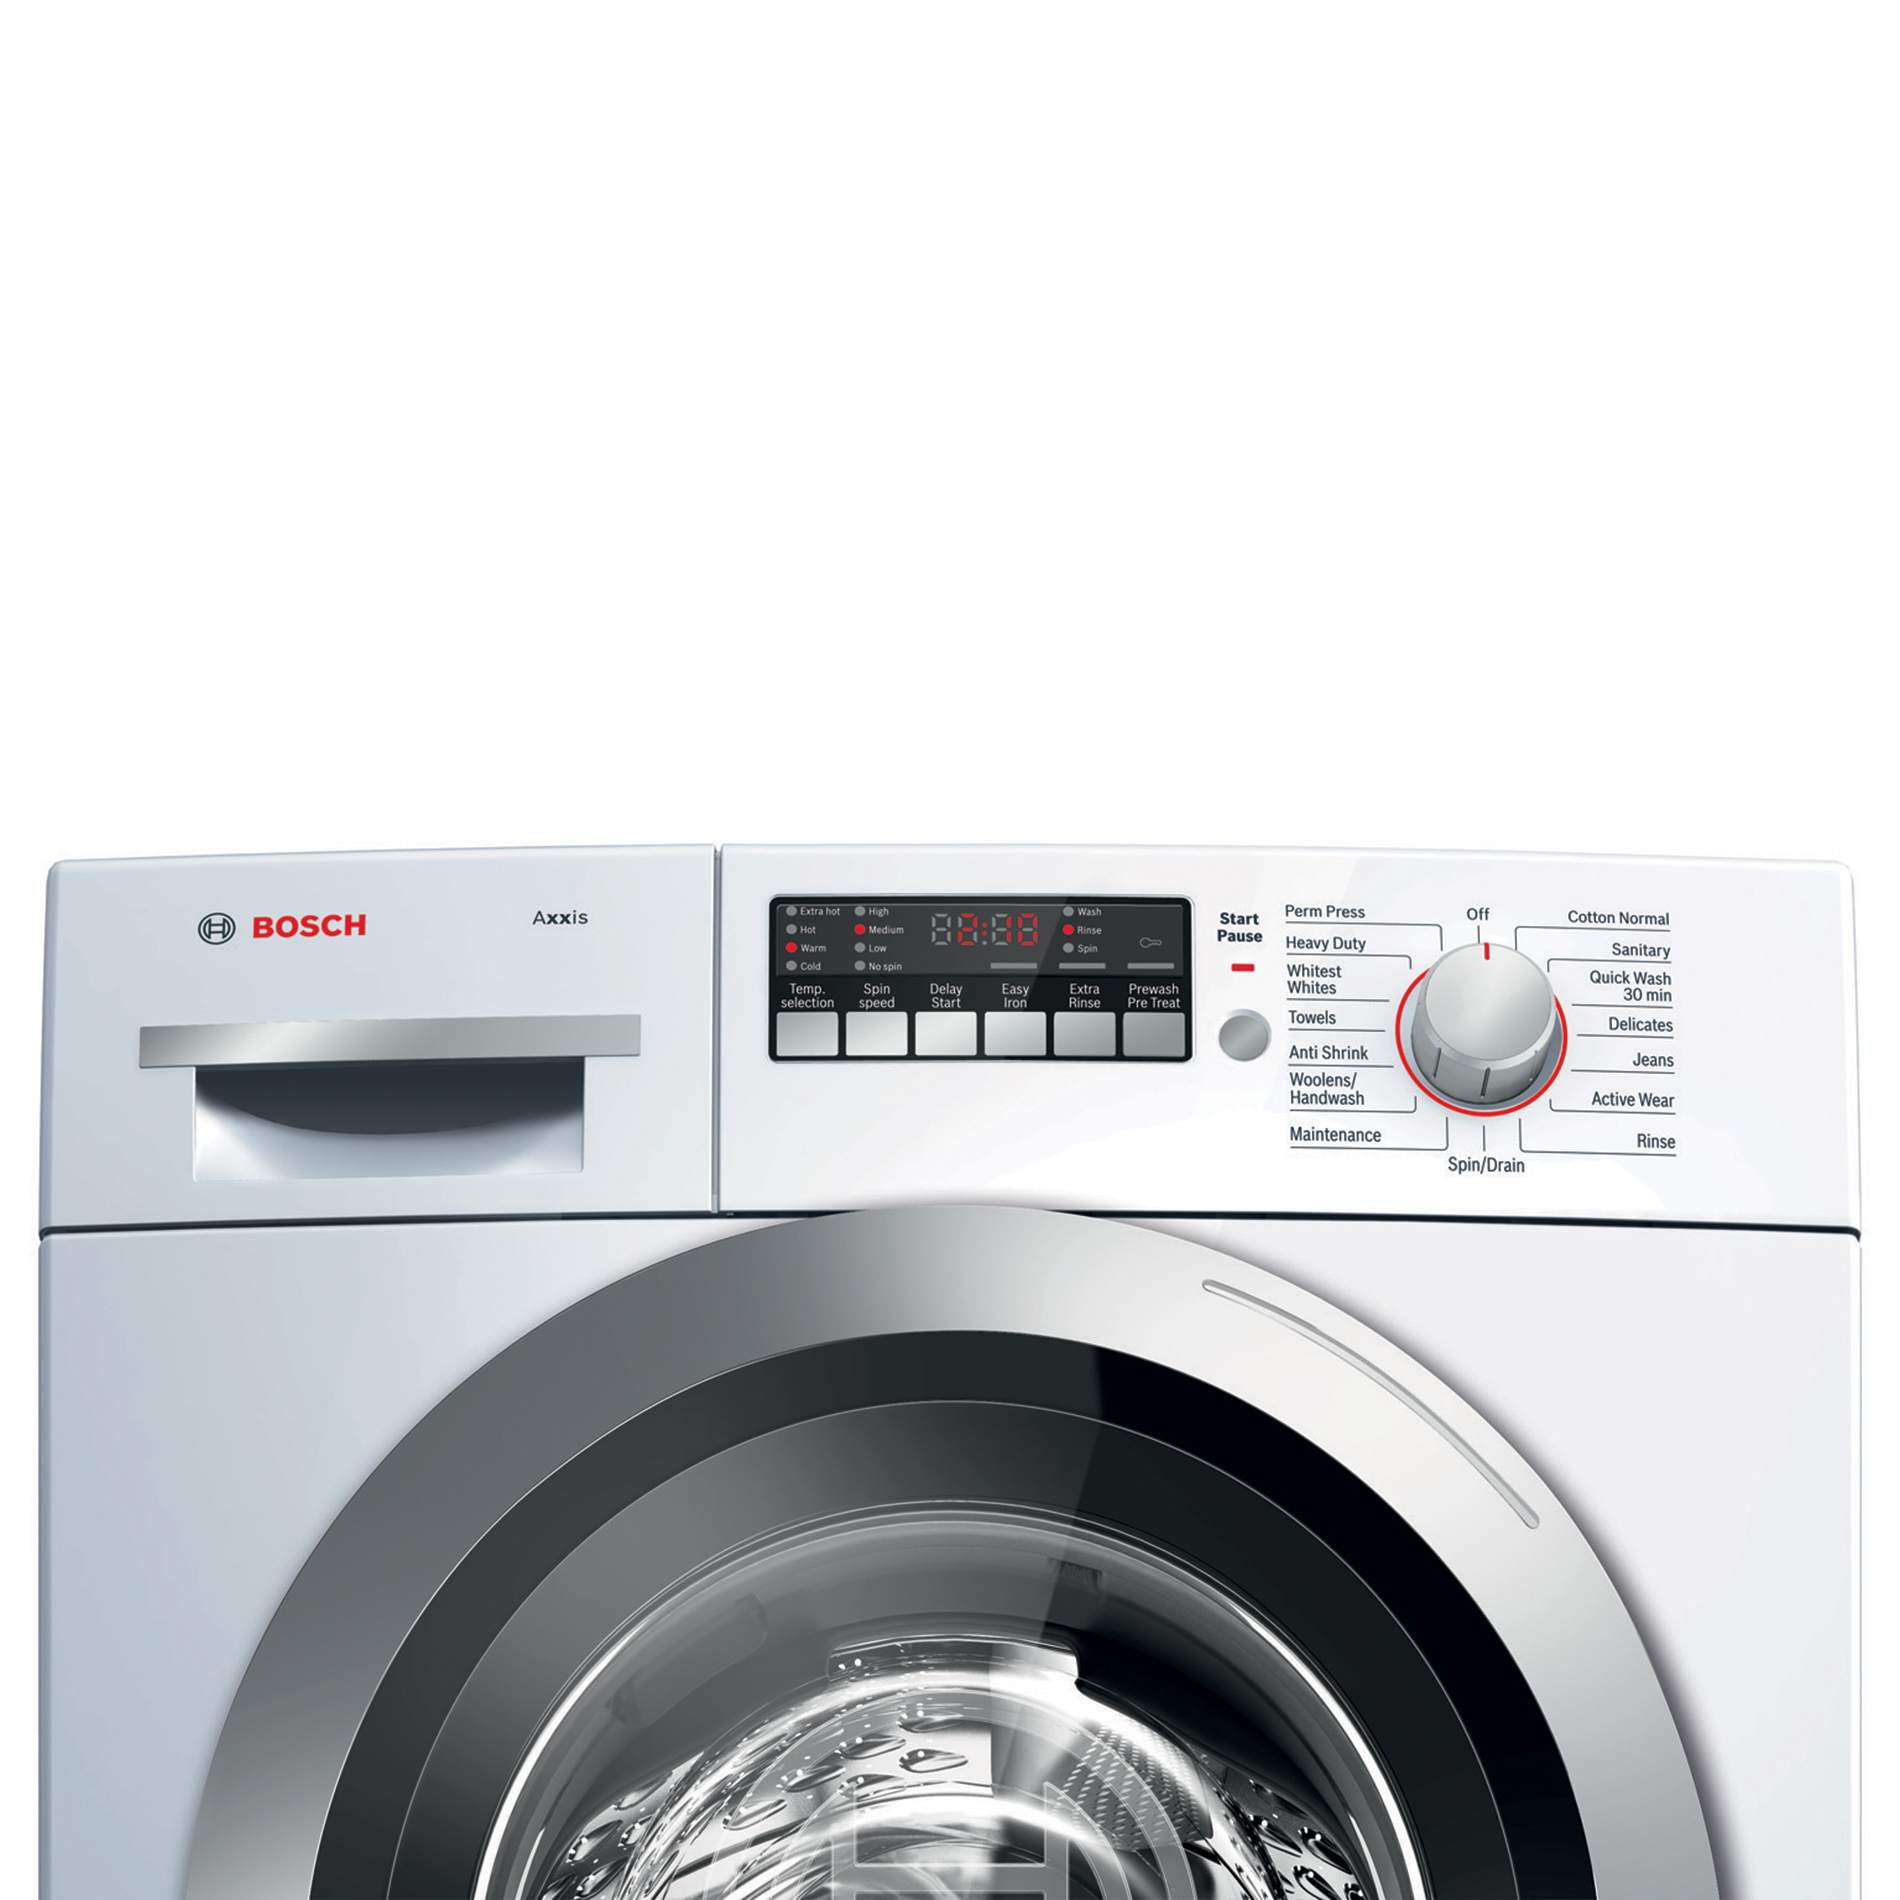 Bosch Axxis 2.2 cu. ft. Compact Front Load Washer - White